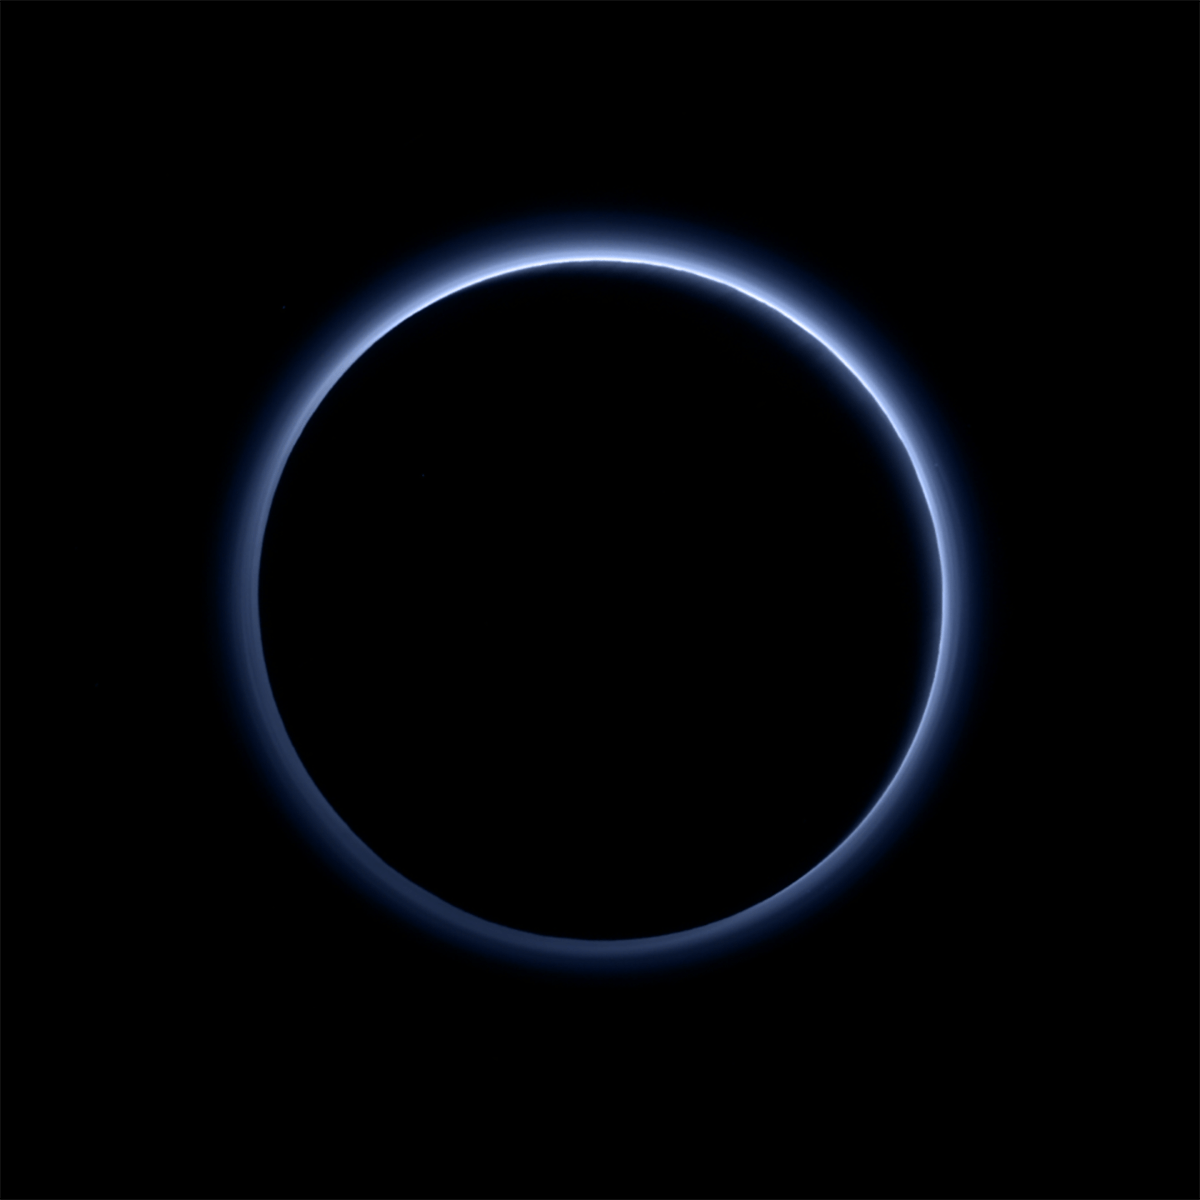 Pluto's Blue Sky: Pluto's haze layer shows its blue color in this picture taken by the New Horizons Ralph/Multispectral Visible Imaging Camera (MVIC). The high-altitude haze is thought to be similar in nature to that seen at Saturn's moon Titan. The source of both hazes likely involves sunlight-initiated chemical reactions of nitrogen and methane, leading to relatively small, soot-like particles (called tholins) that grow as they settle toward the surface. This image was generated by software that combines information from blue, red and near-infrared images to replicate the color a human eye would perceive as closely as possible.